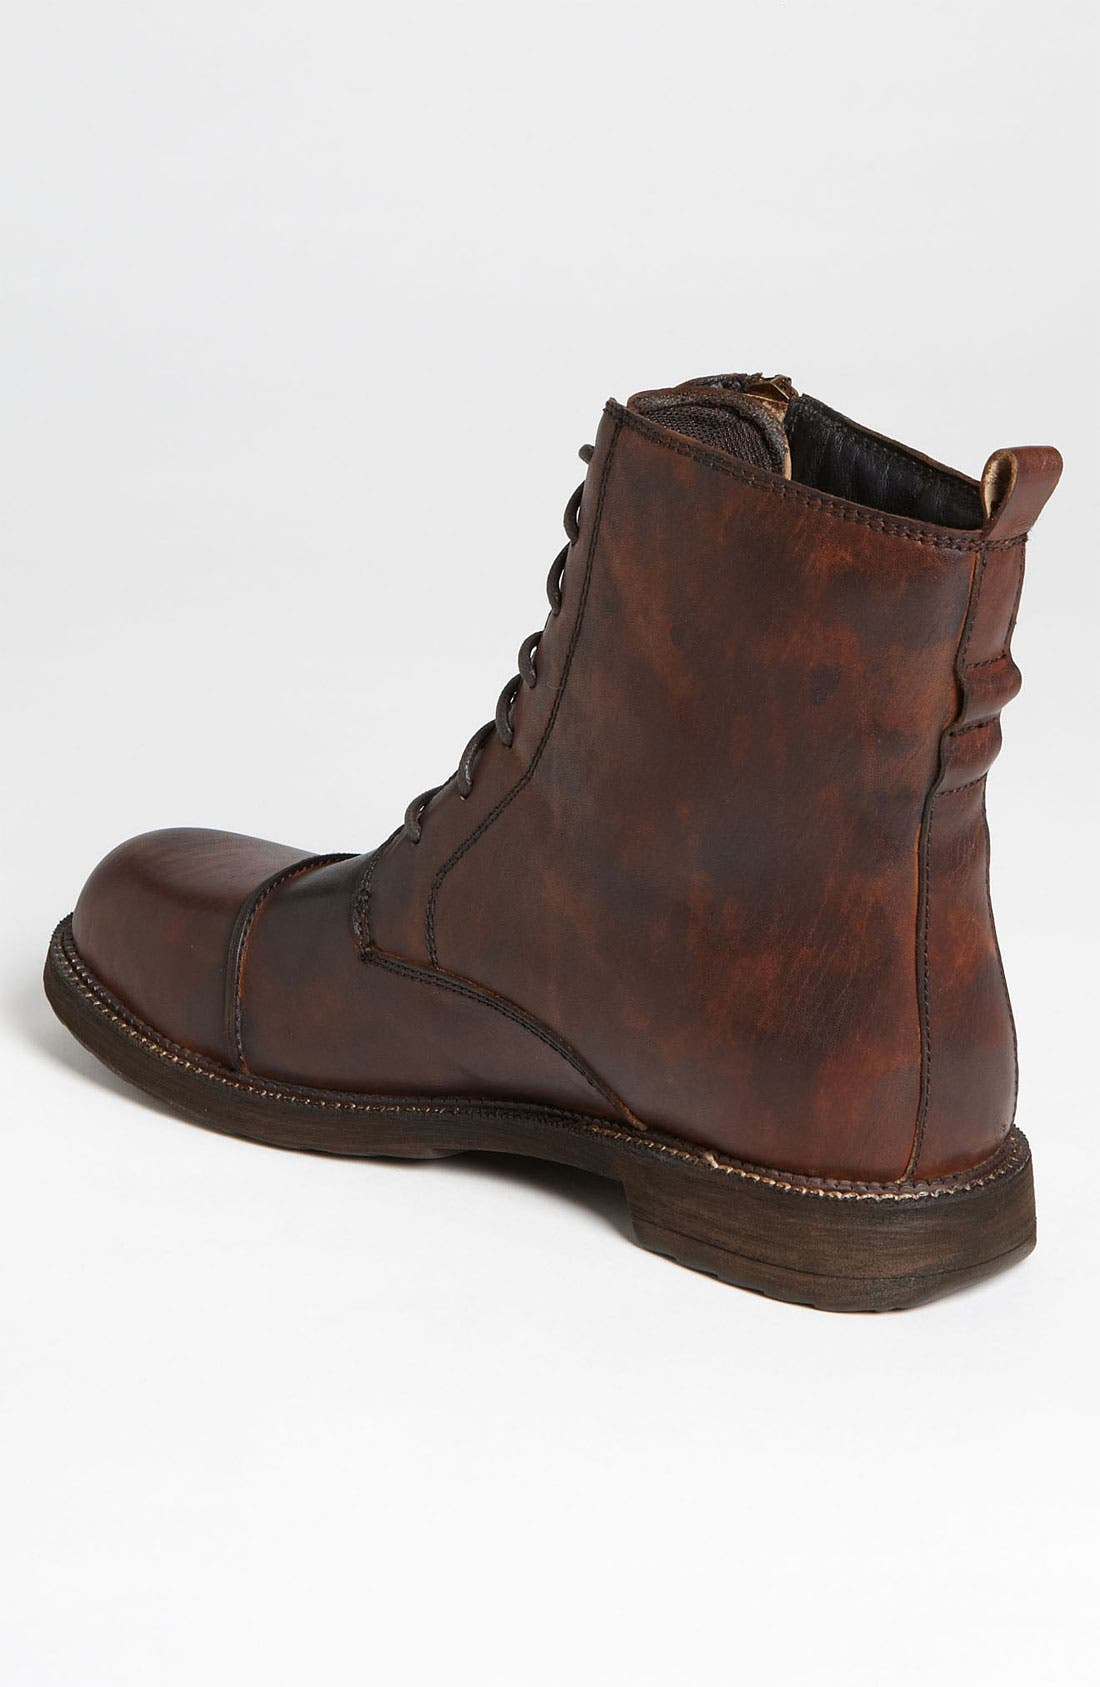 Alternate Image 2  - Bed Stu 'Patriot' Cap Toe Boot (Men)